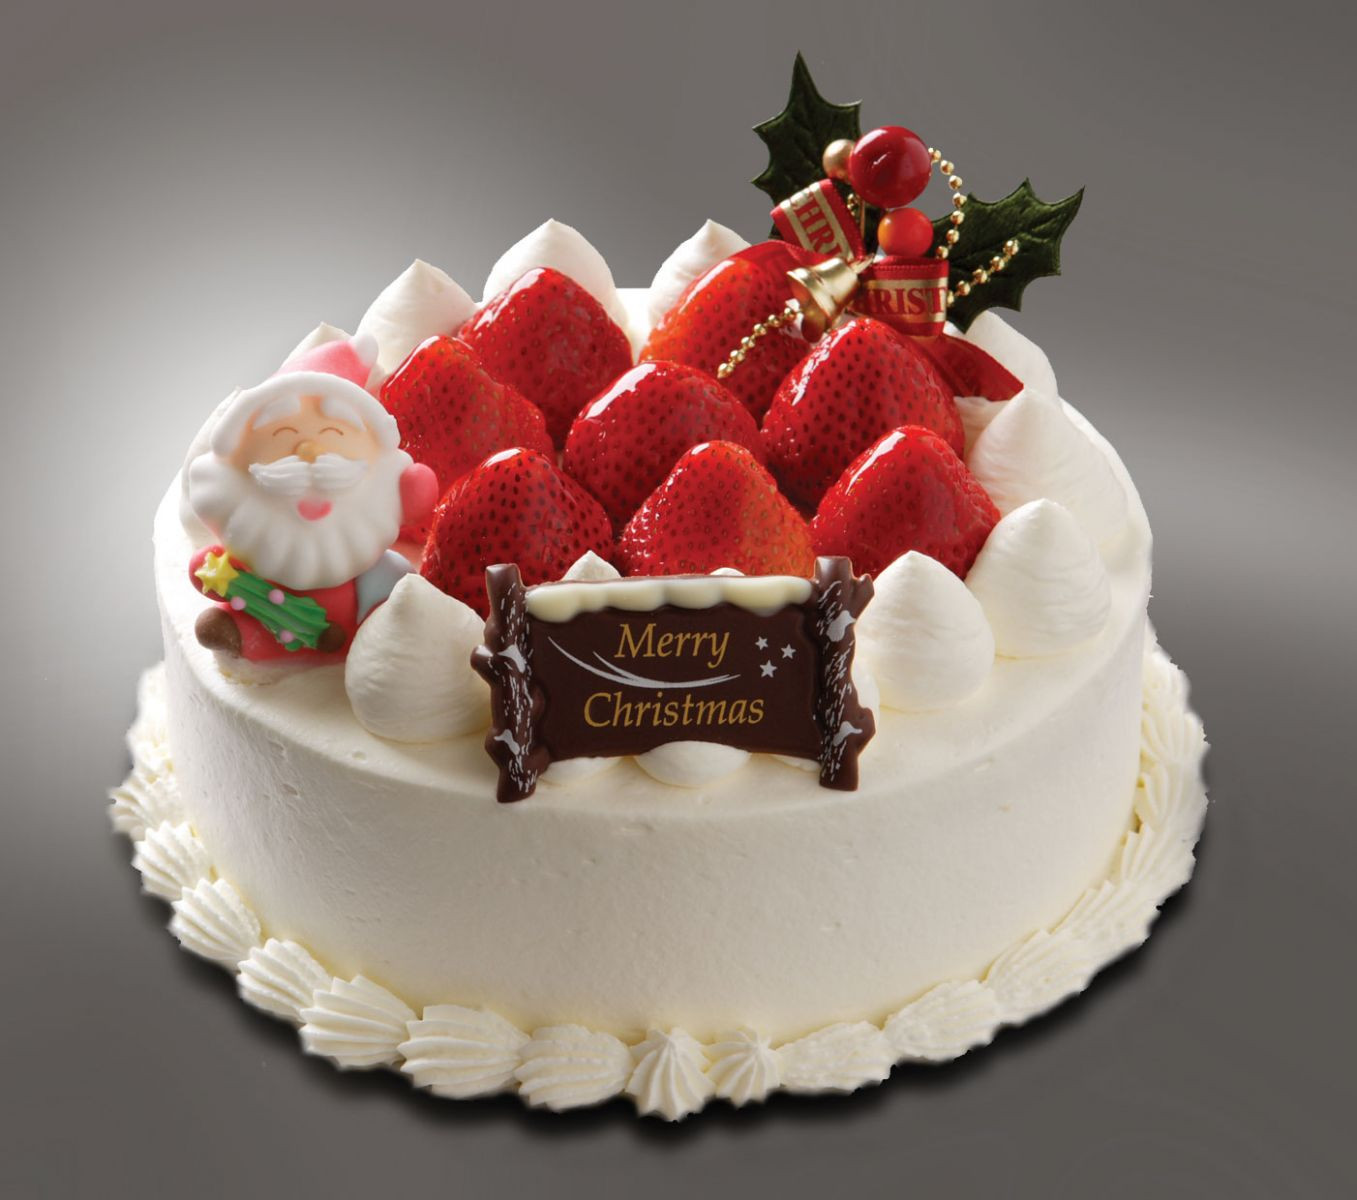 Beautiful Christmas Desserts  5 Popular Desserts For Christmas Eve by nithya